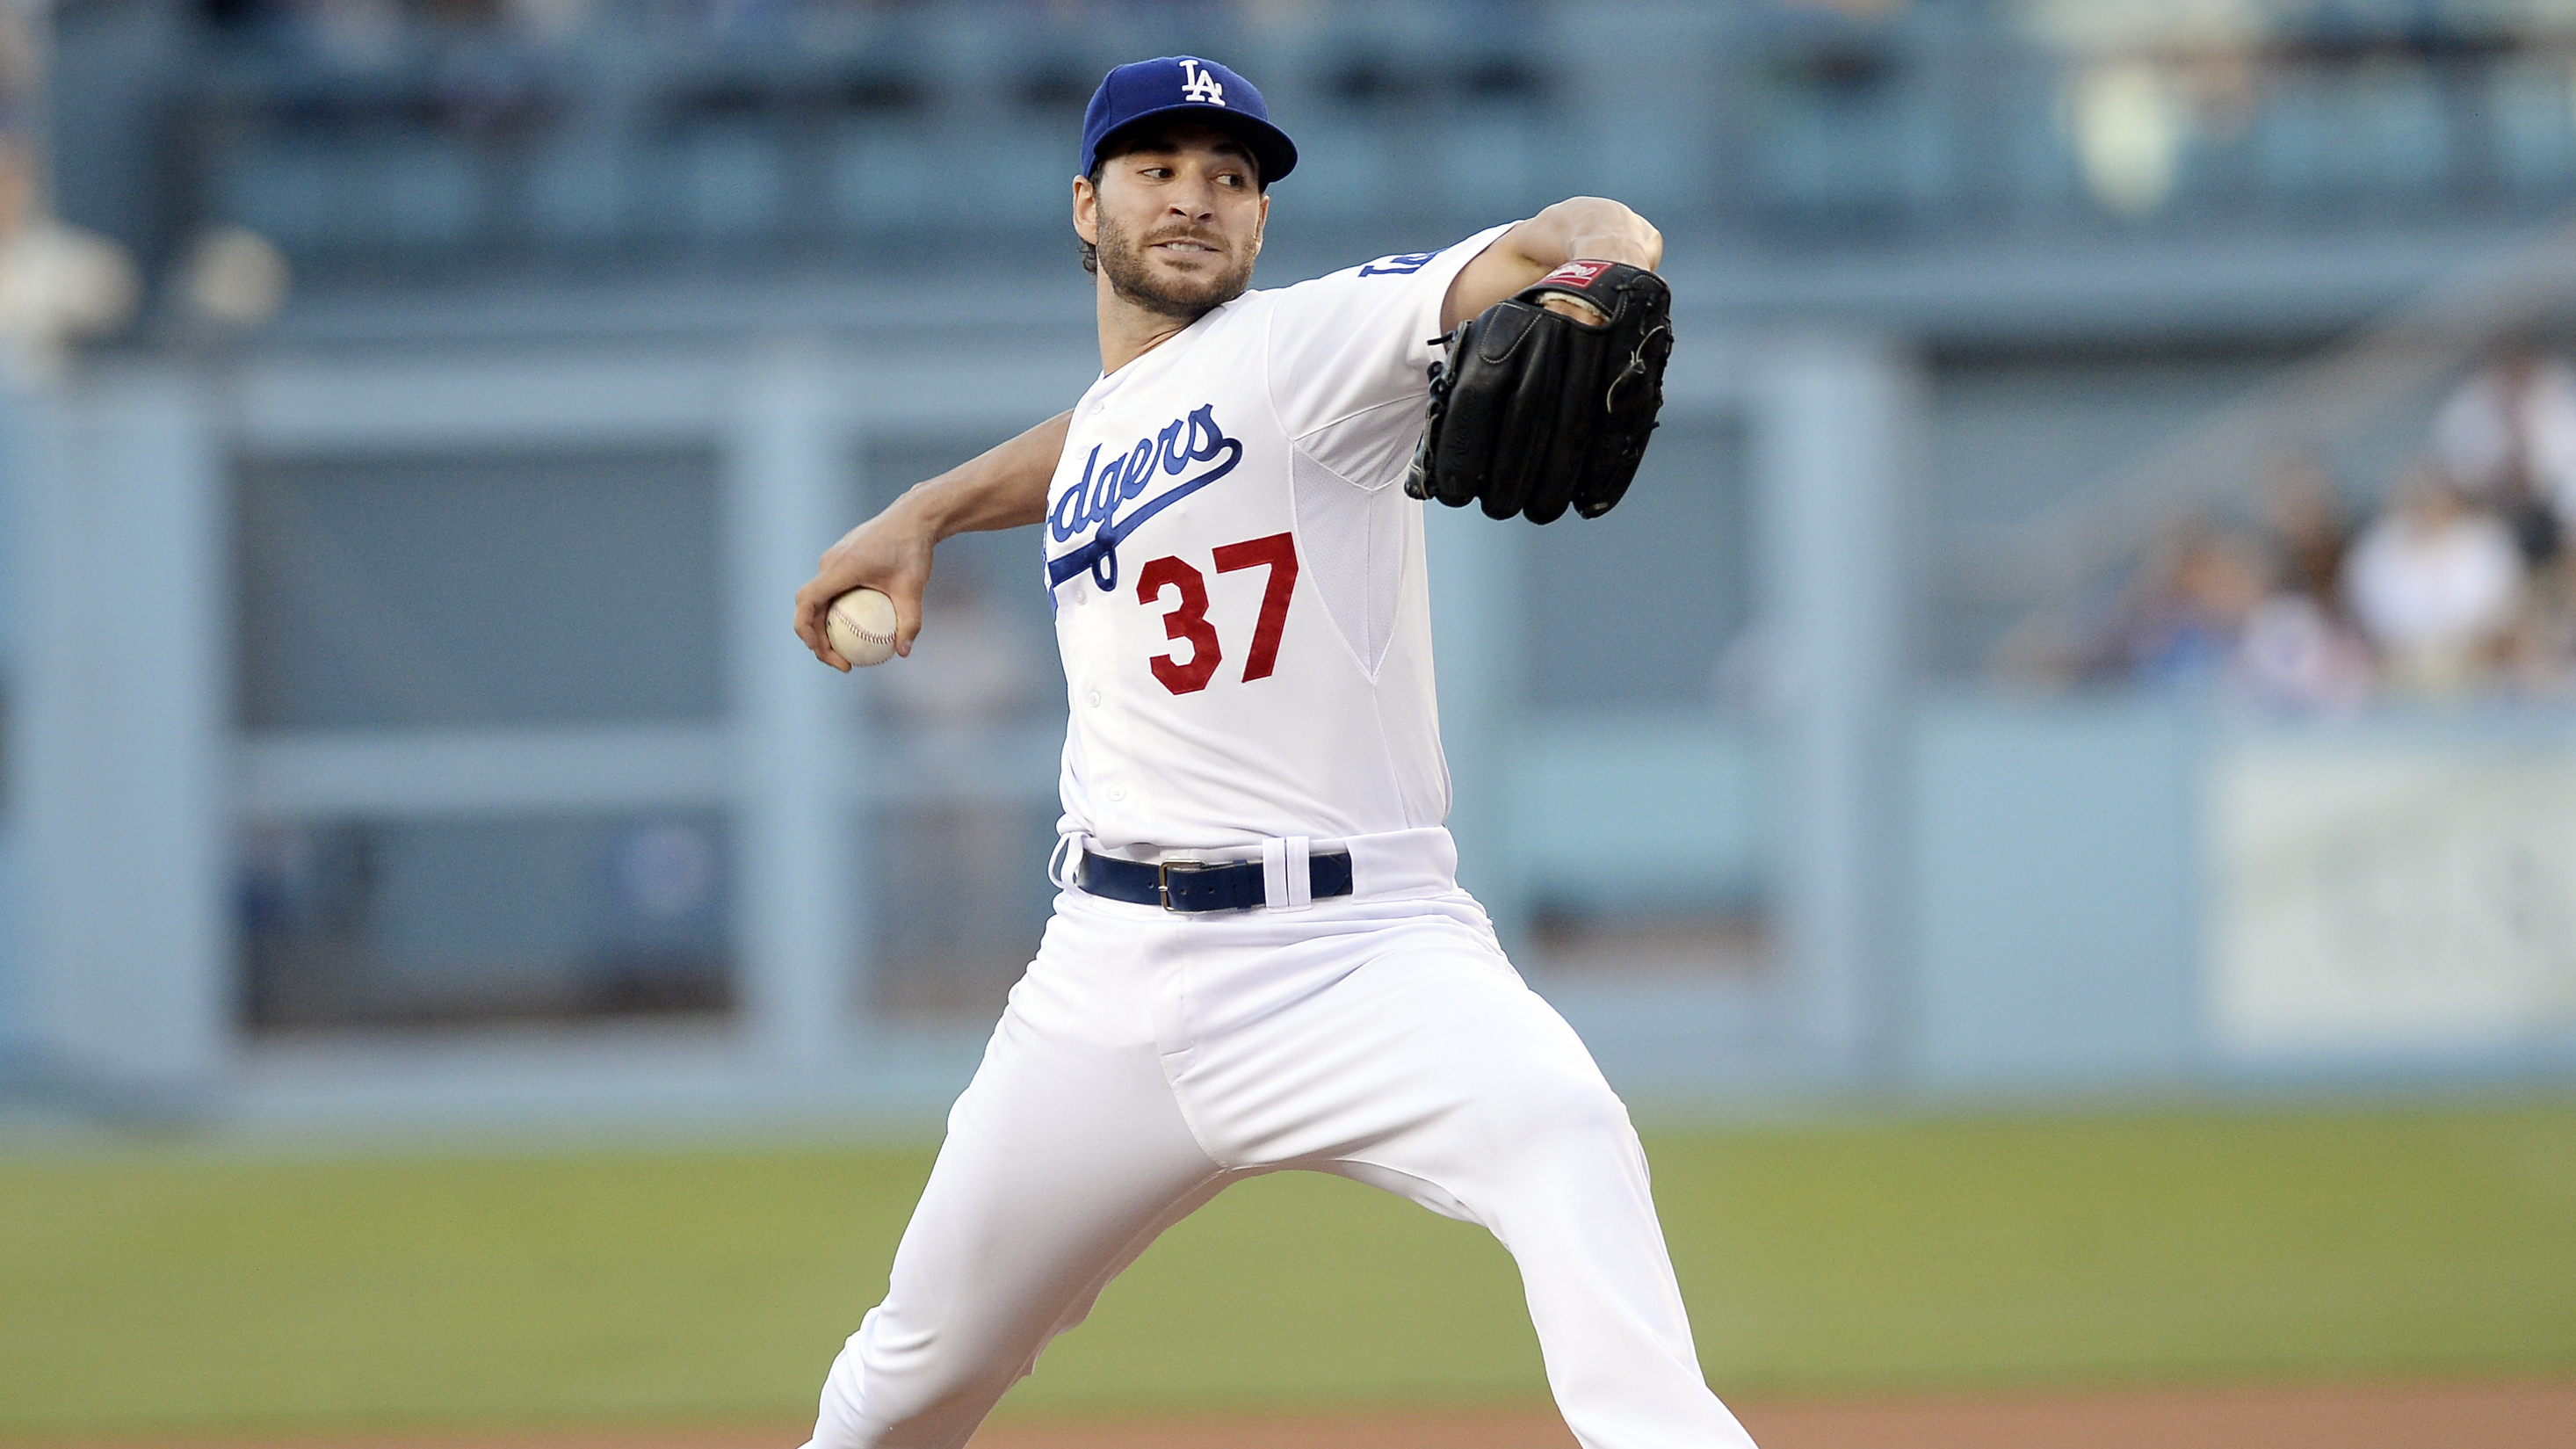 Baseball's Arms Race: The Price Of All Those Fast Pitches